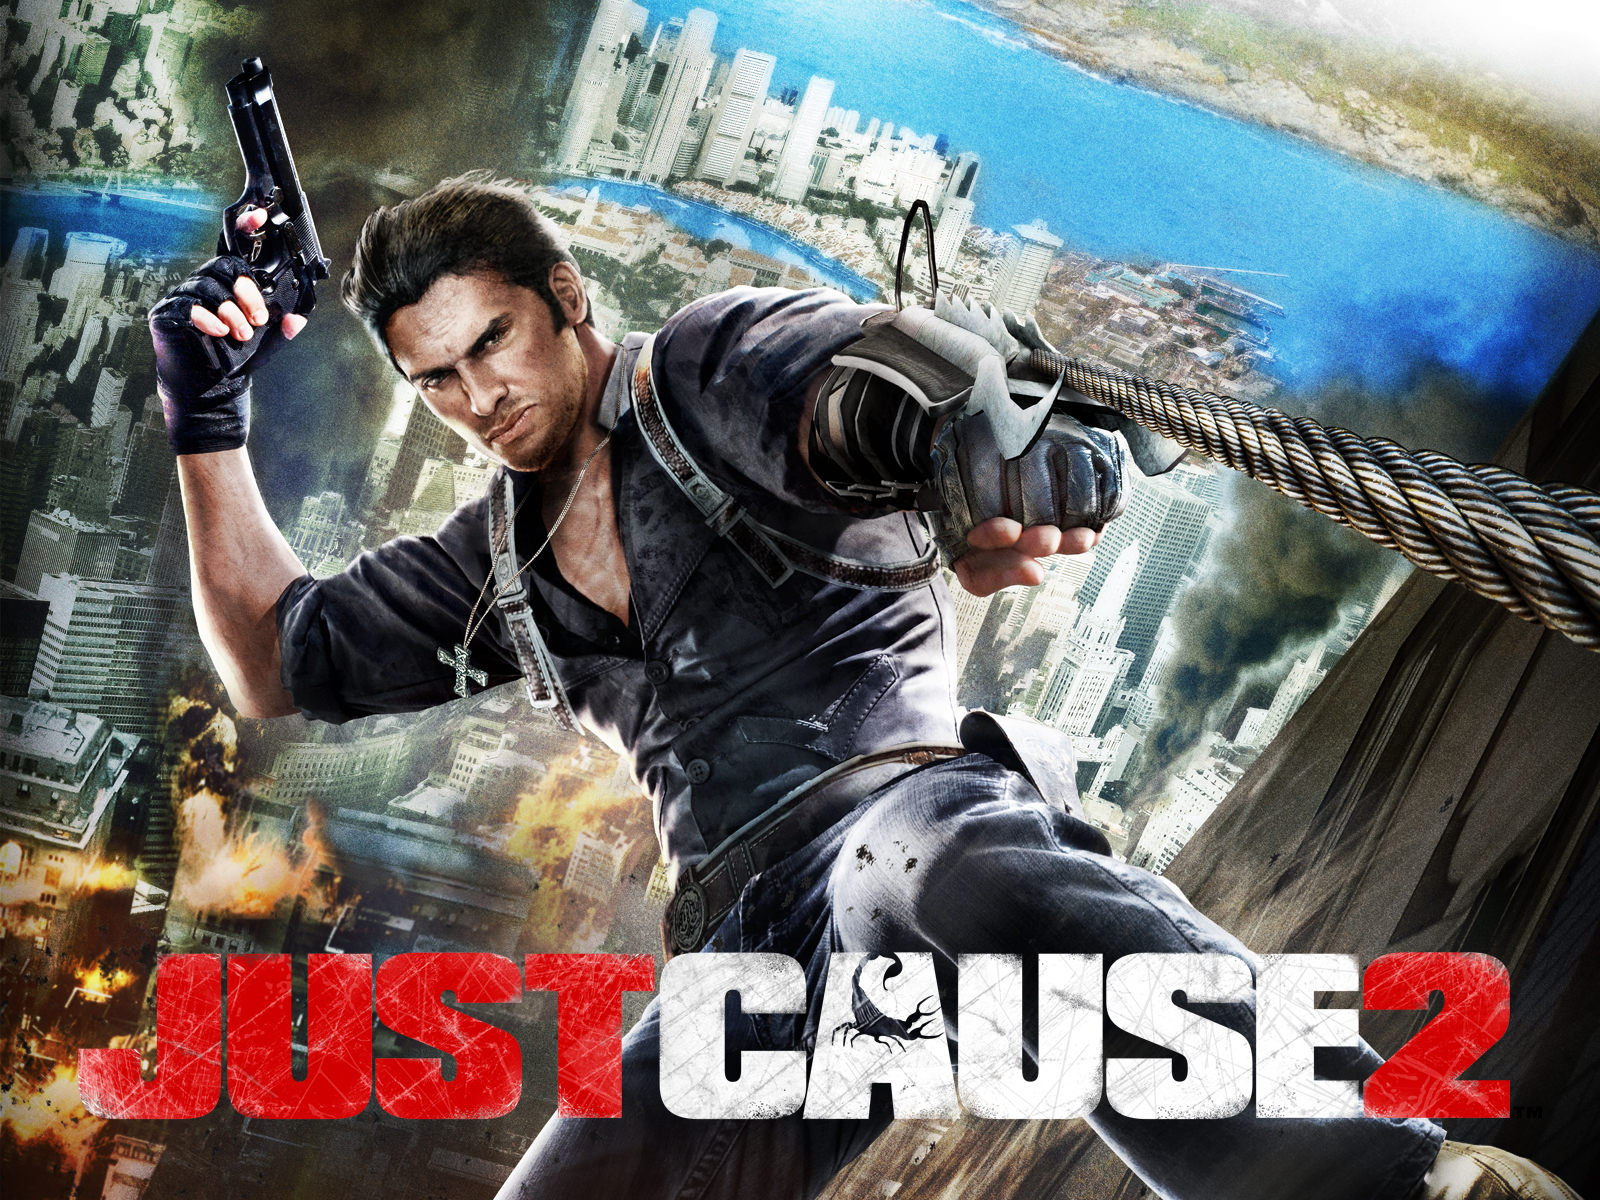 Wallpapers juegos Just-cause-2-wallpaper-artwork